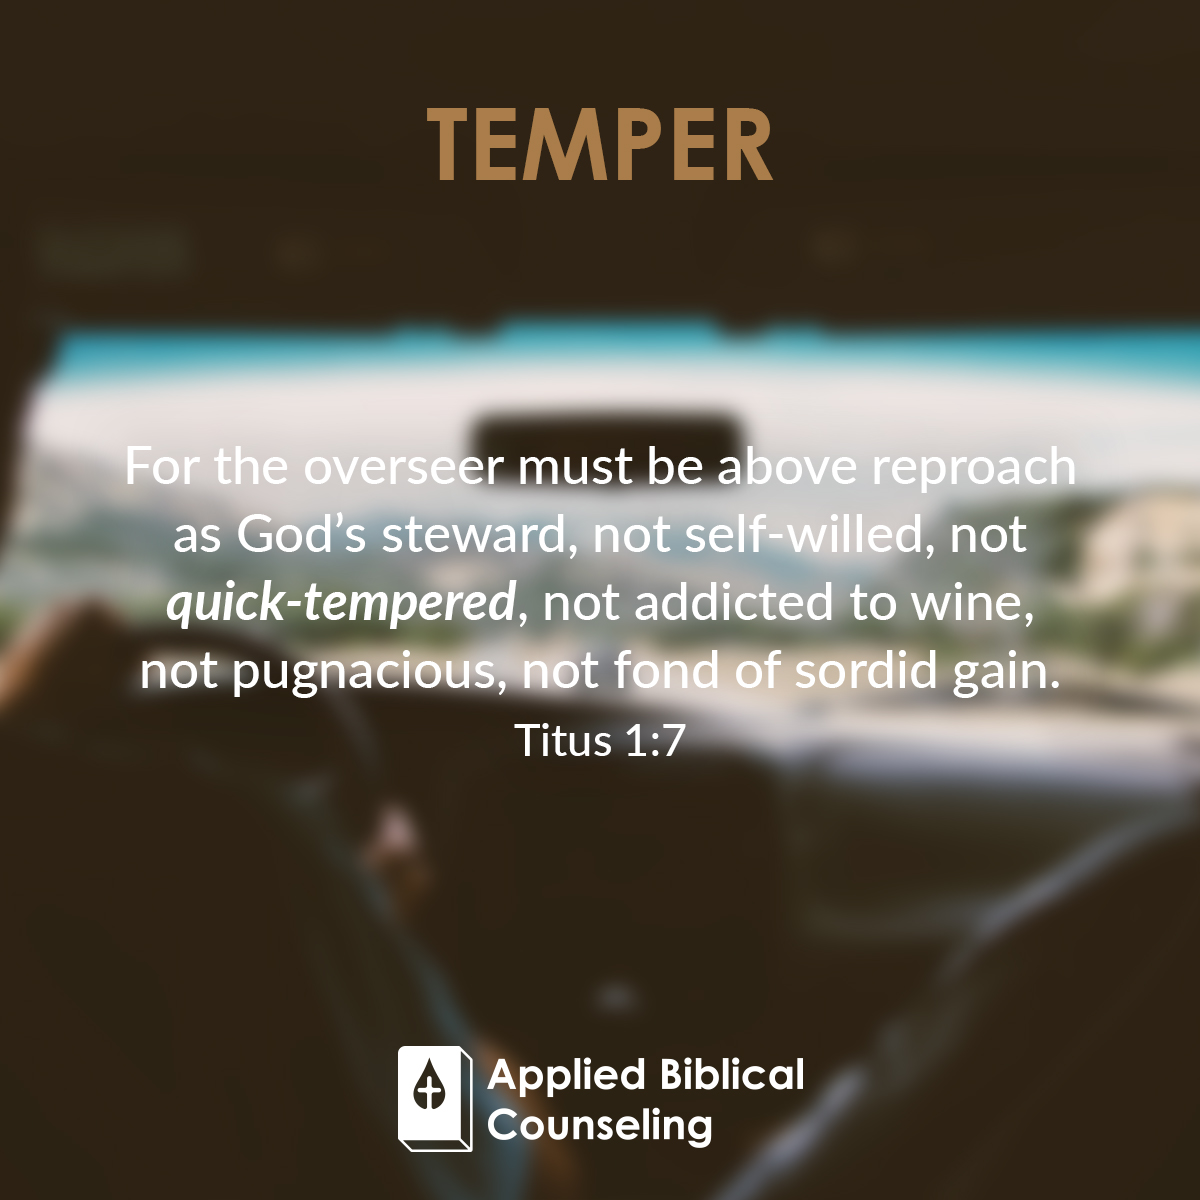 Temper Applied Biblical Counseling 4